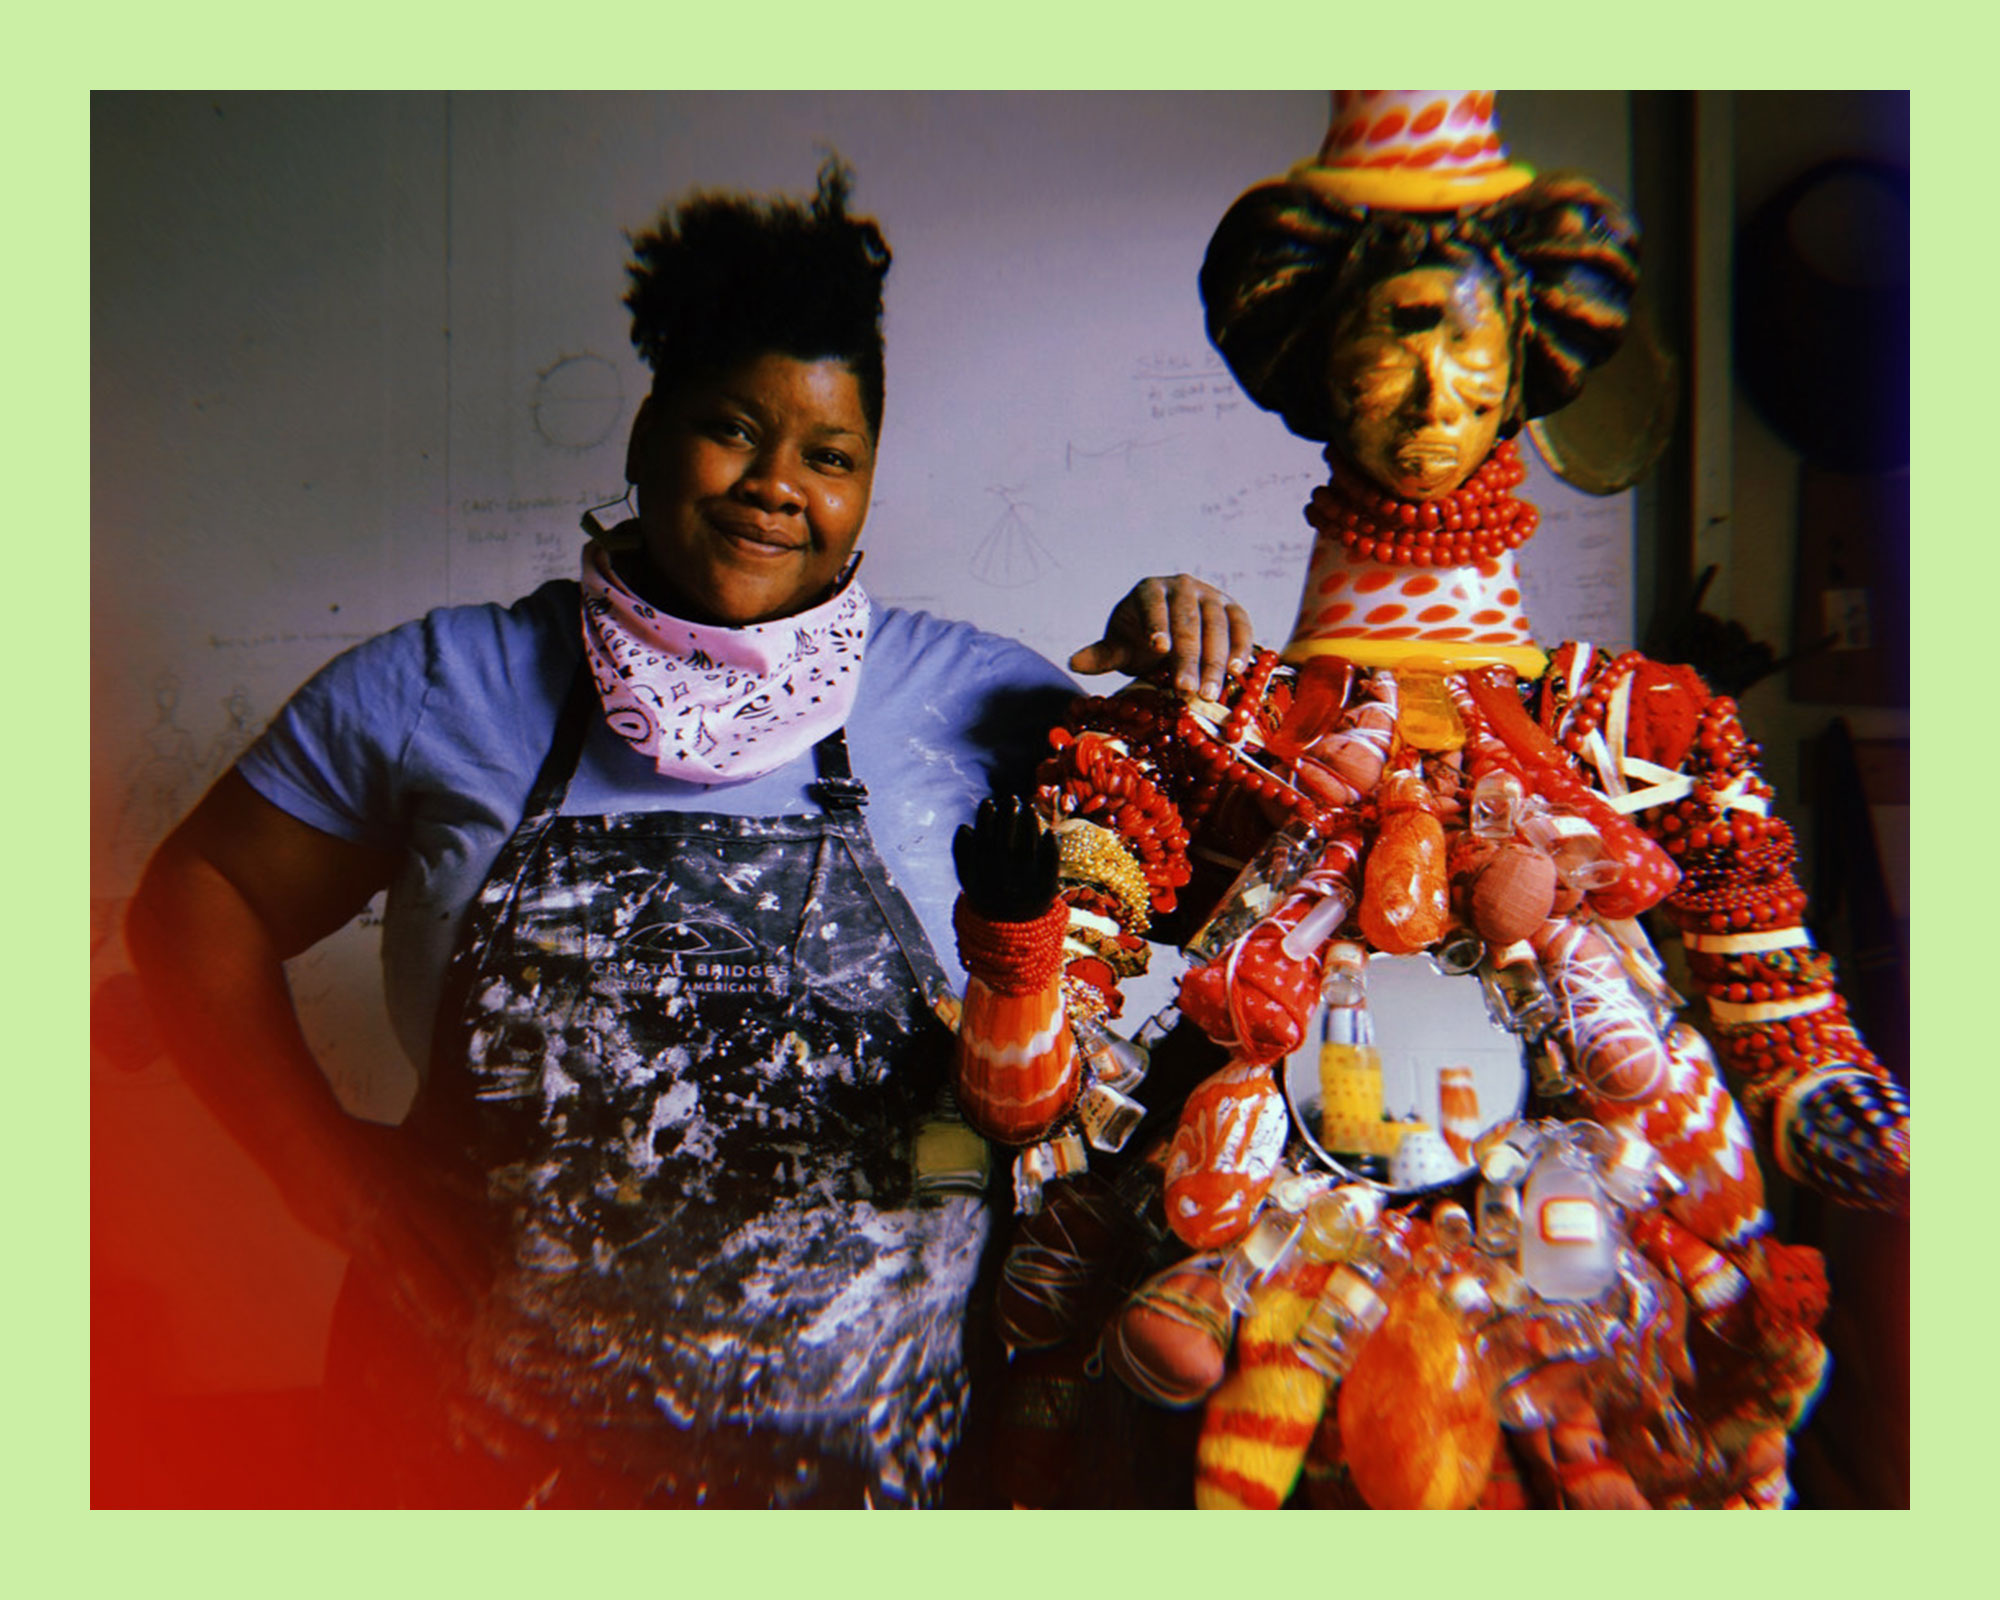 photo of a Black woman and artist, Vanessa German, smiling and standing next to her mixed-media sculpture